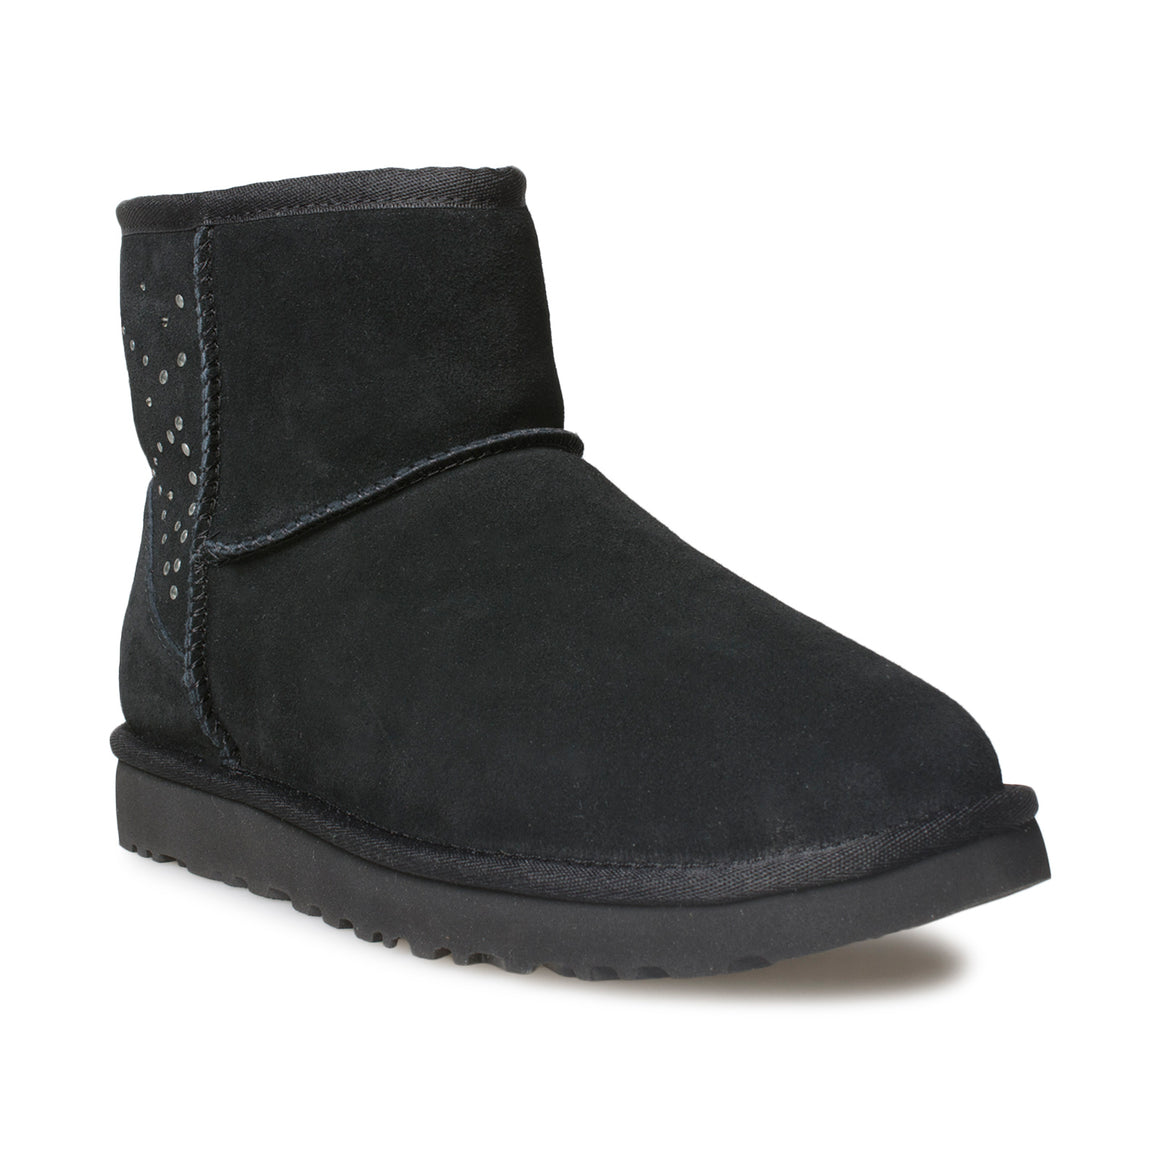 UGG Classic Mini II Studded Black Boots - Women's